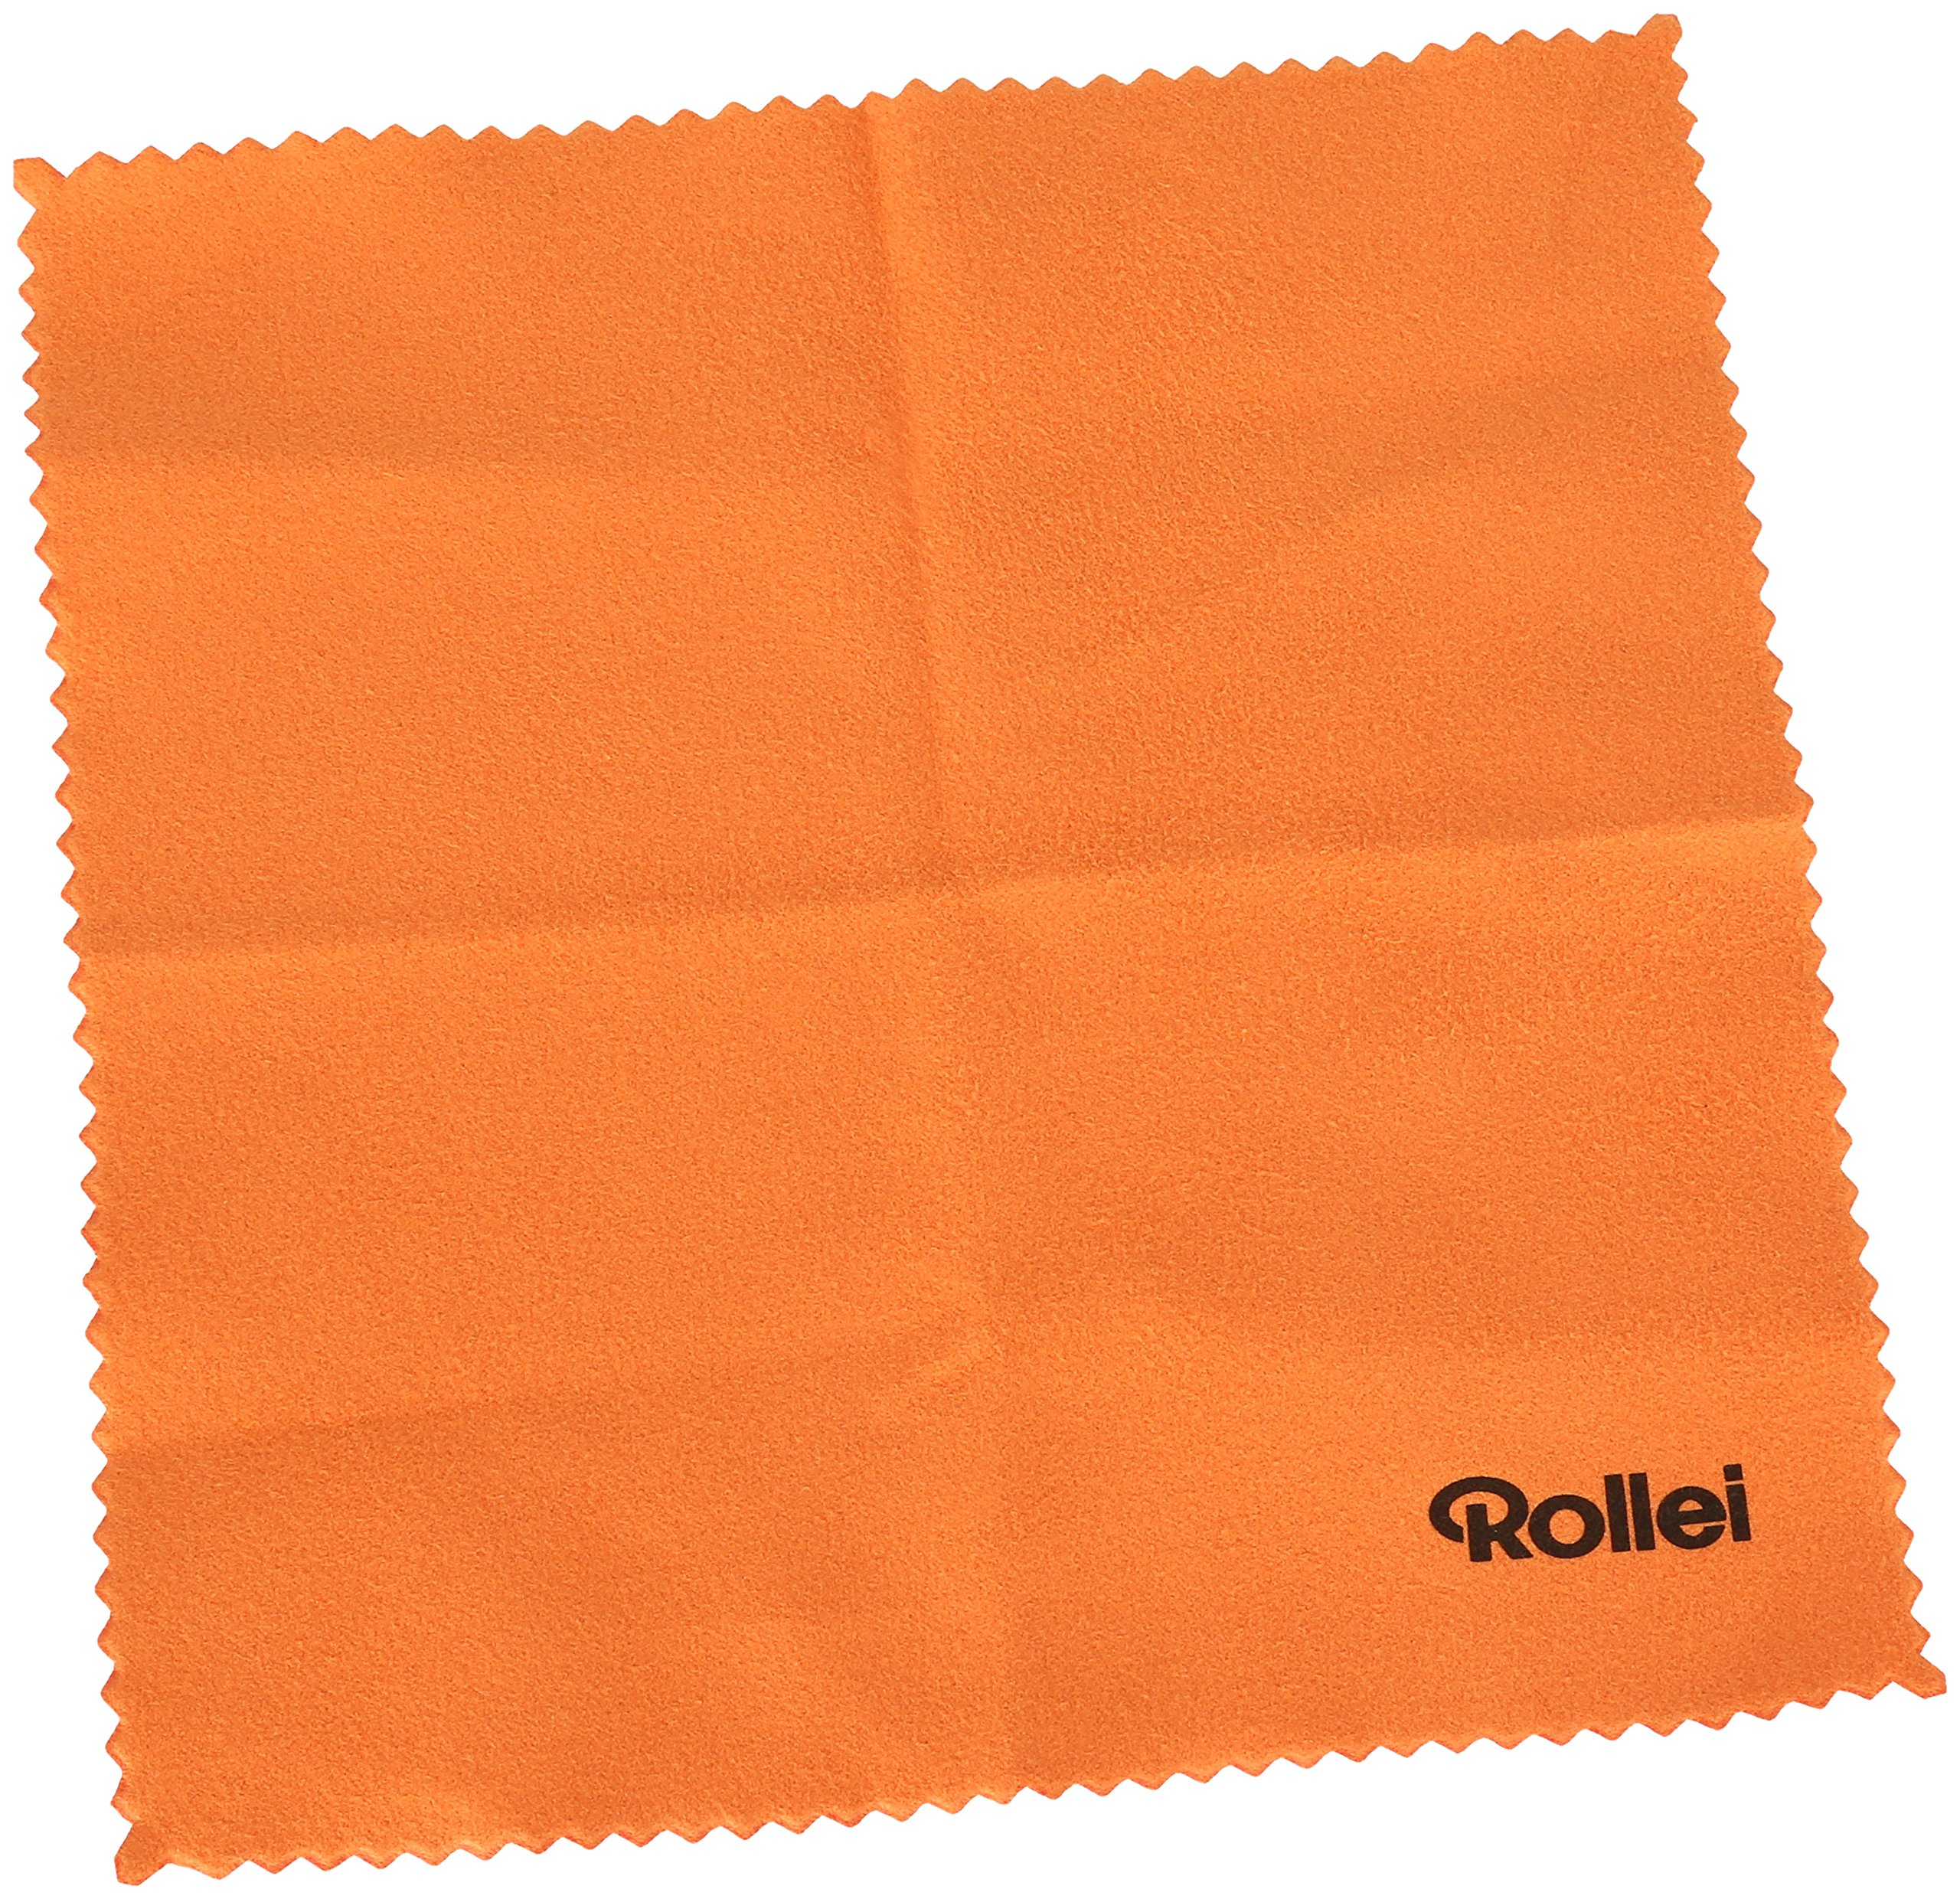 Rollei Square Filter Bag 150 mm - Padded Nylon Bag for Square Filters with a Width of 150 mm, incl. Shoulder Strap and Cleaning Cloth - Black by Rollei (Image #9)